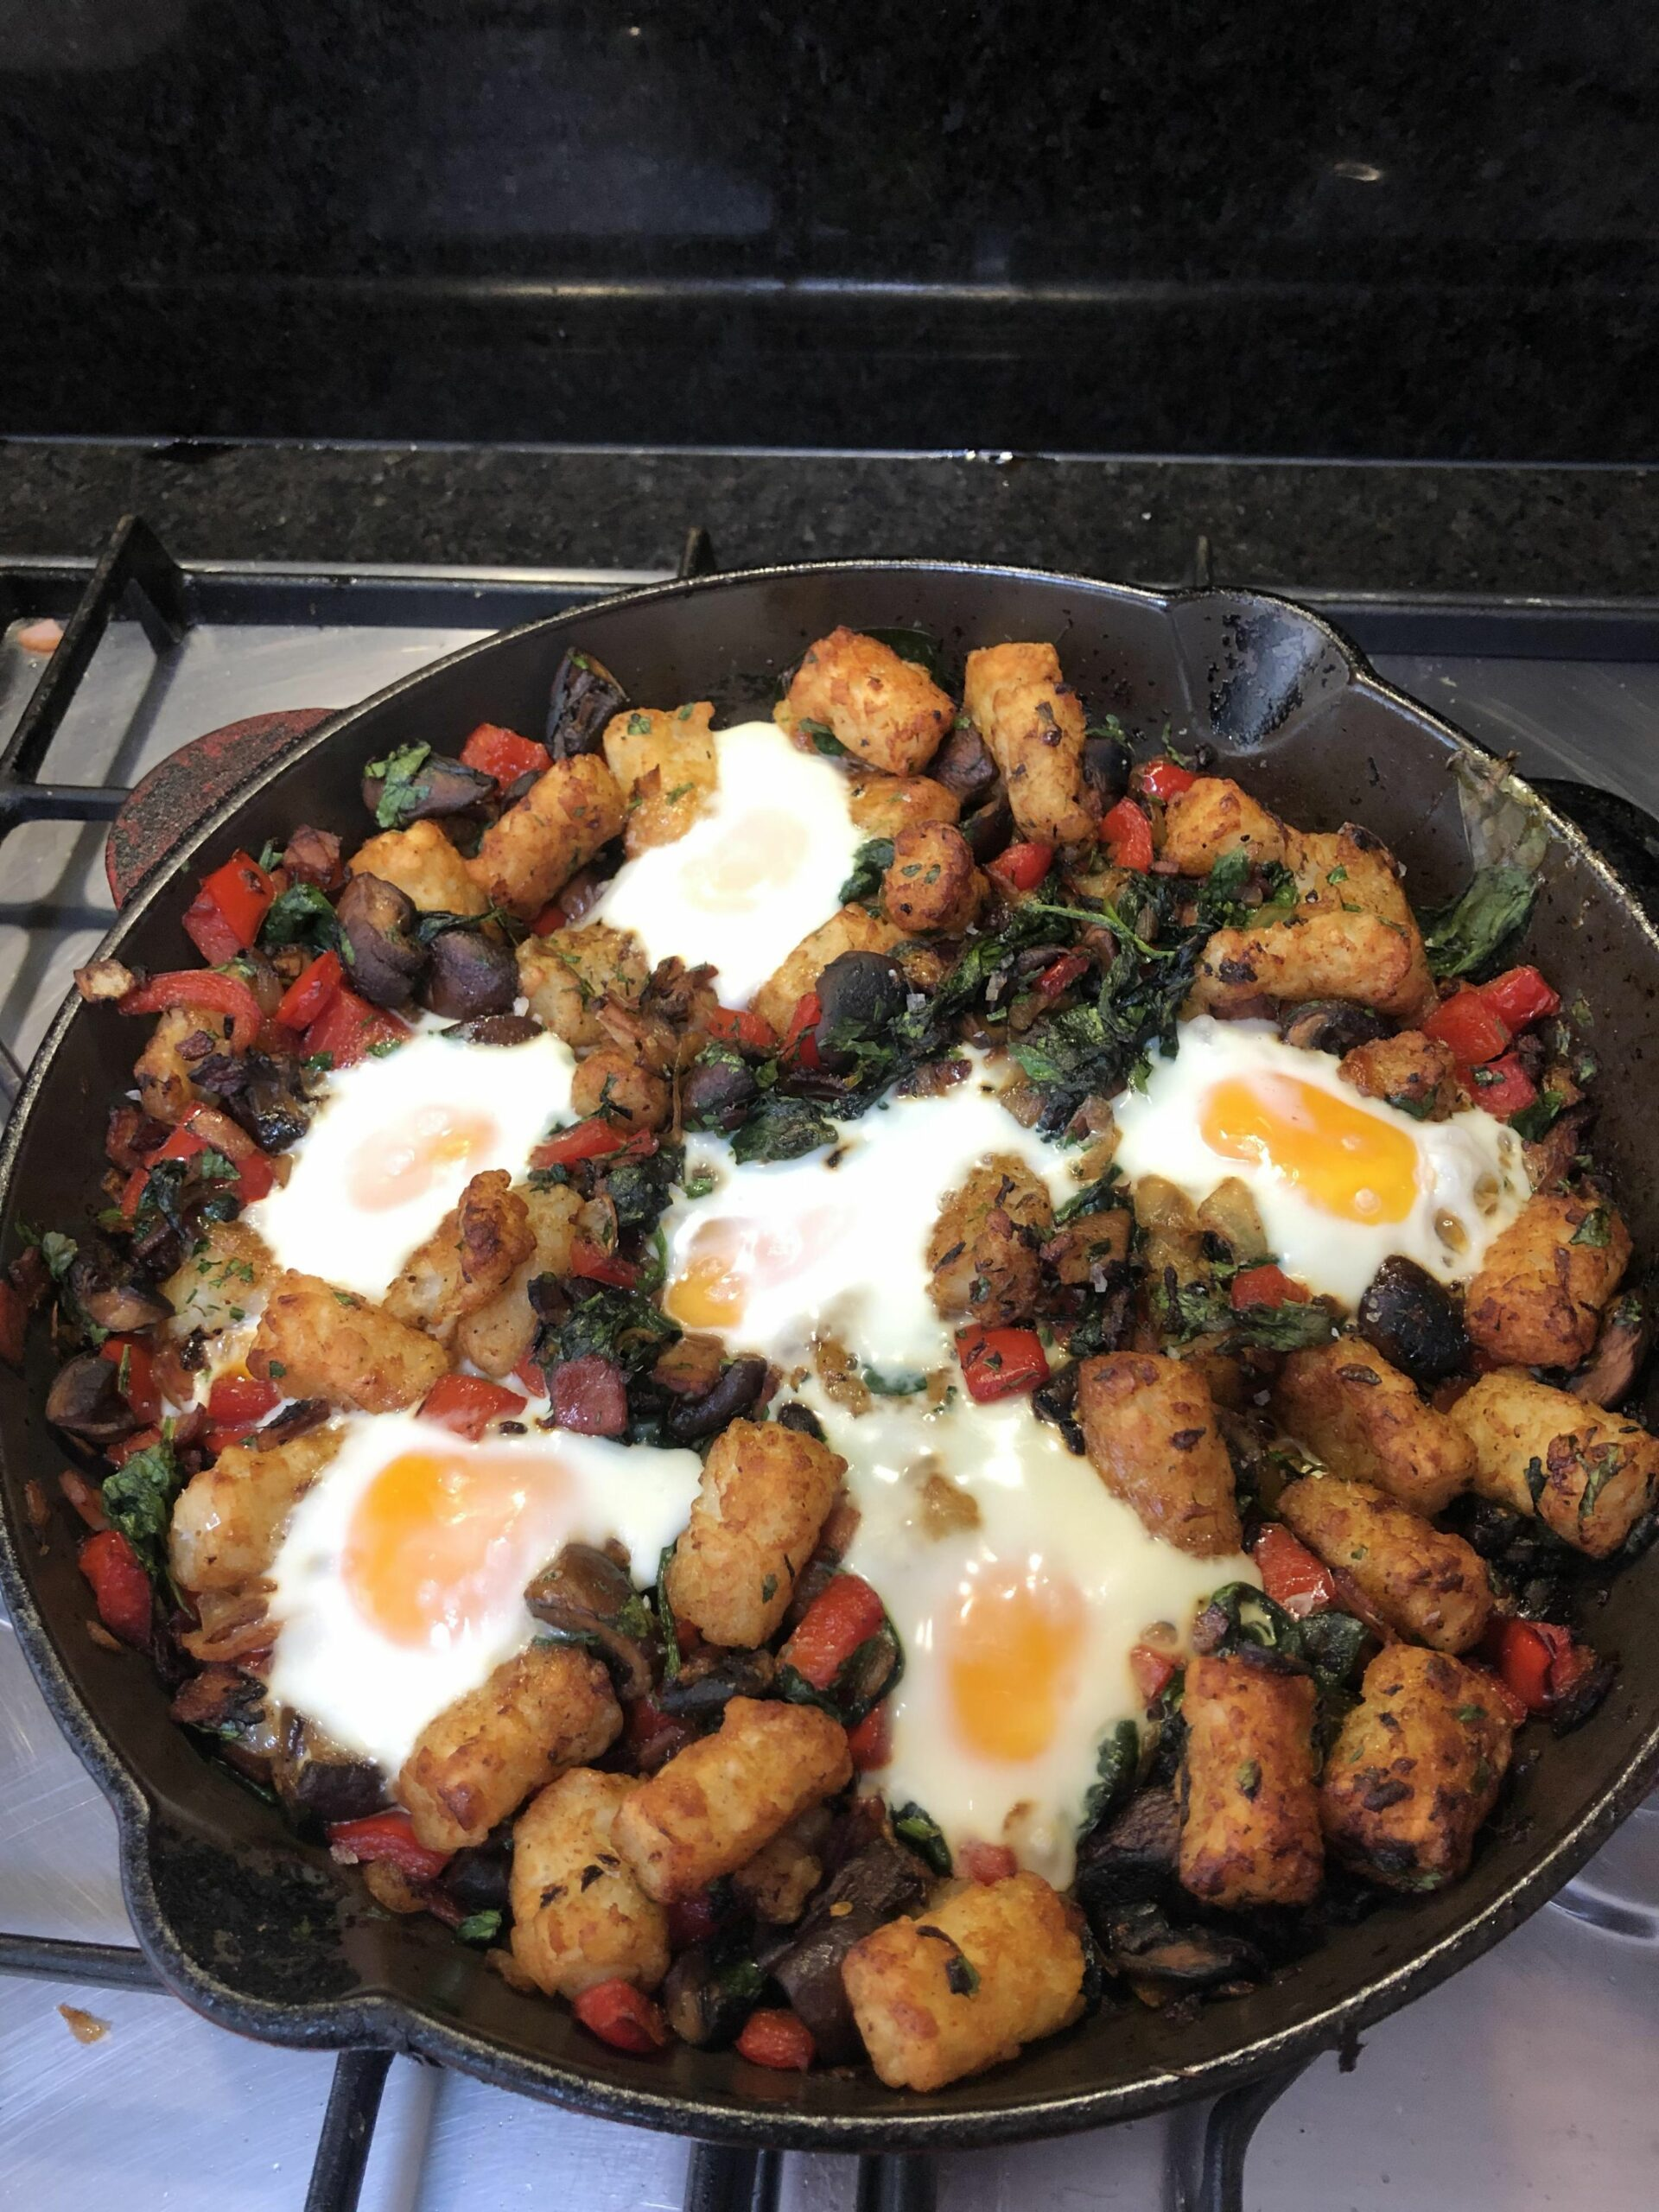 Homemade] Pot Hash for Breakfast : food - Breakfast Recipes Reddit